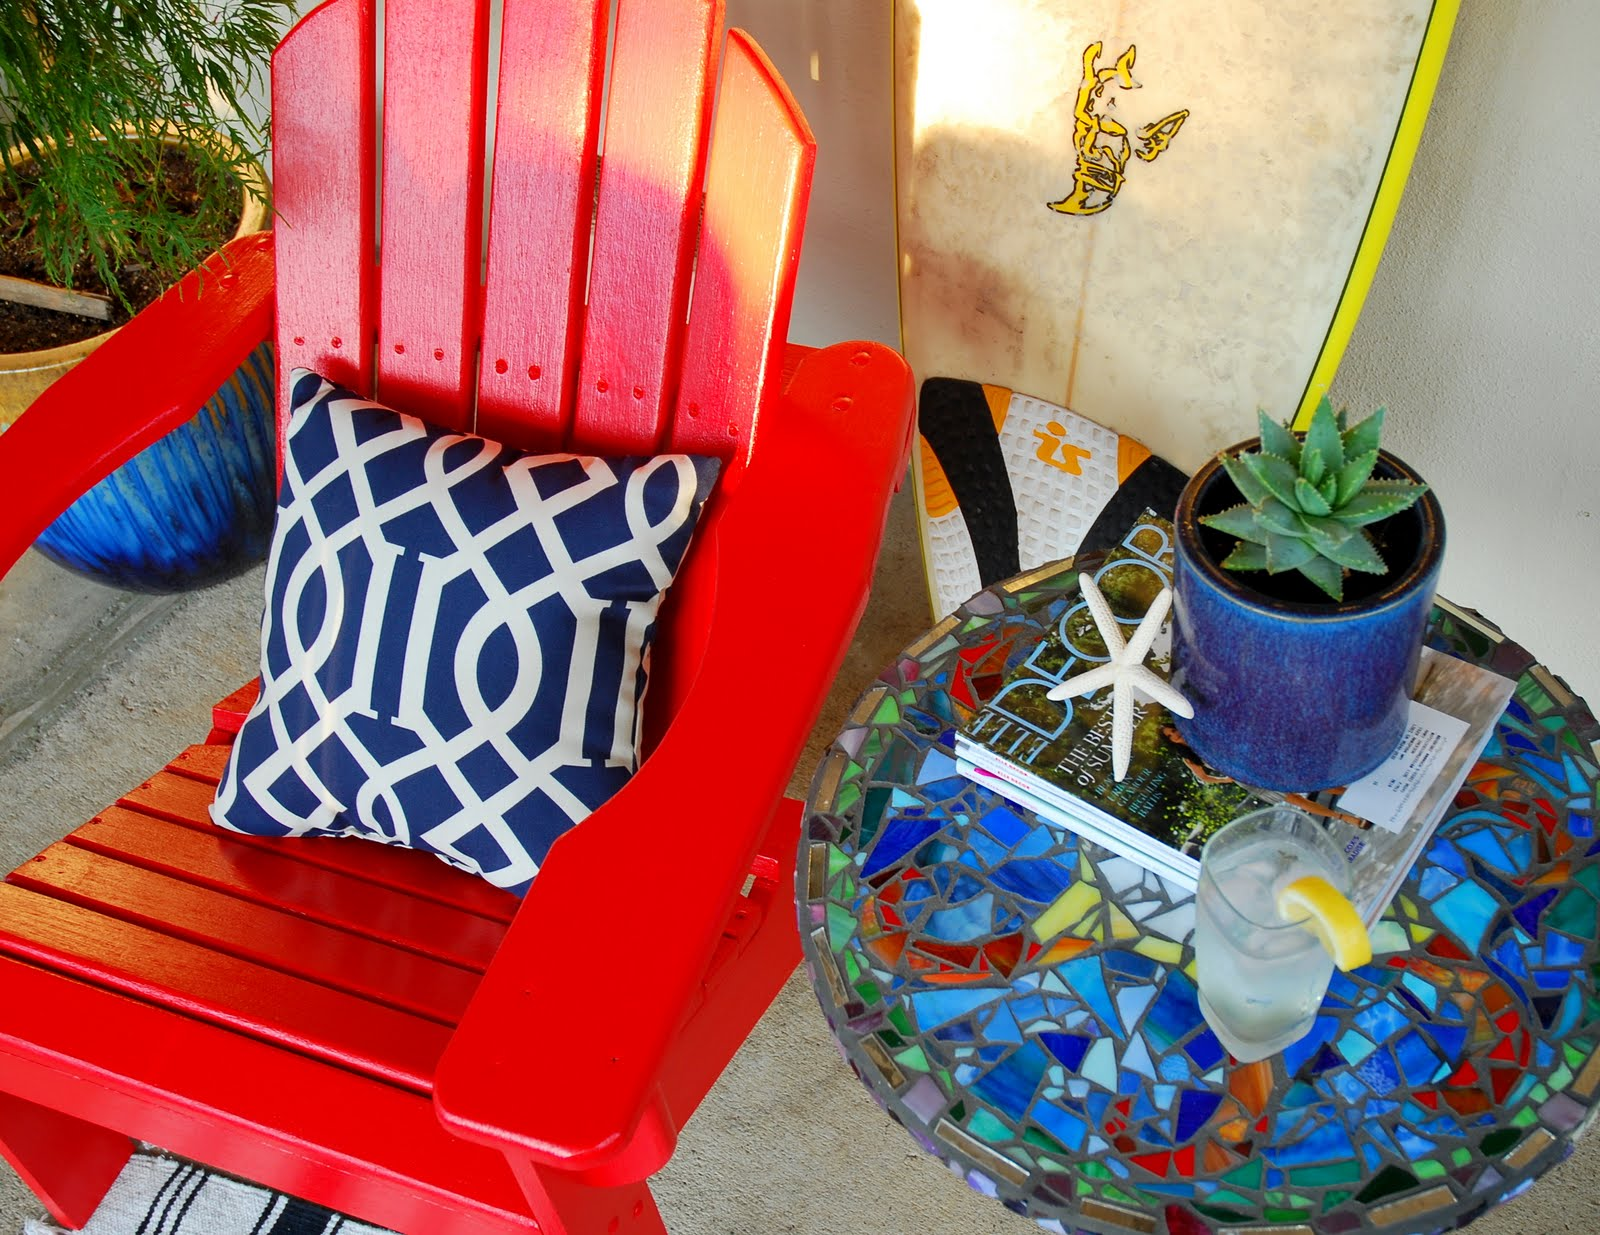 ... any DIY projects lately? Painted any outdoor furniture? Please share